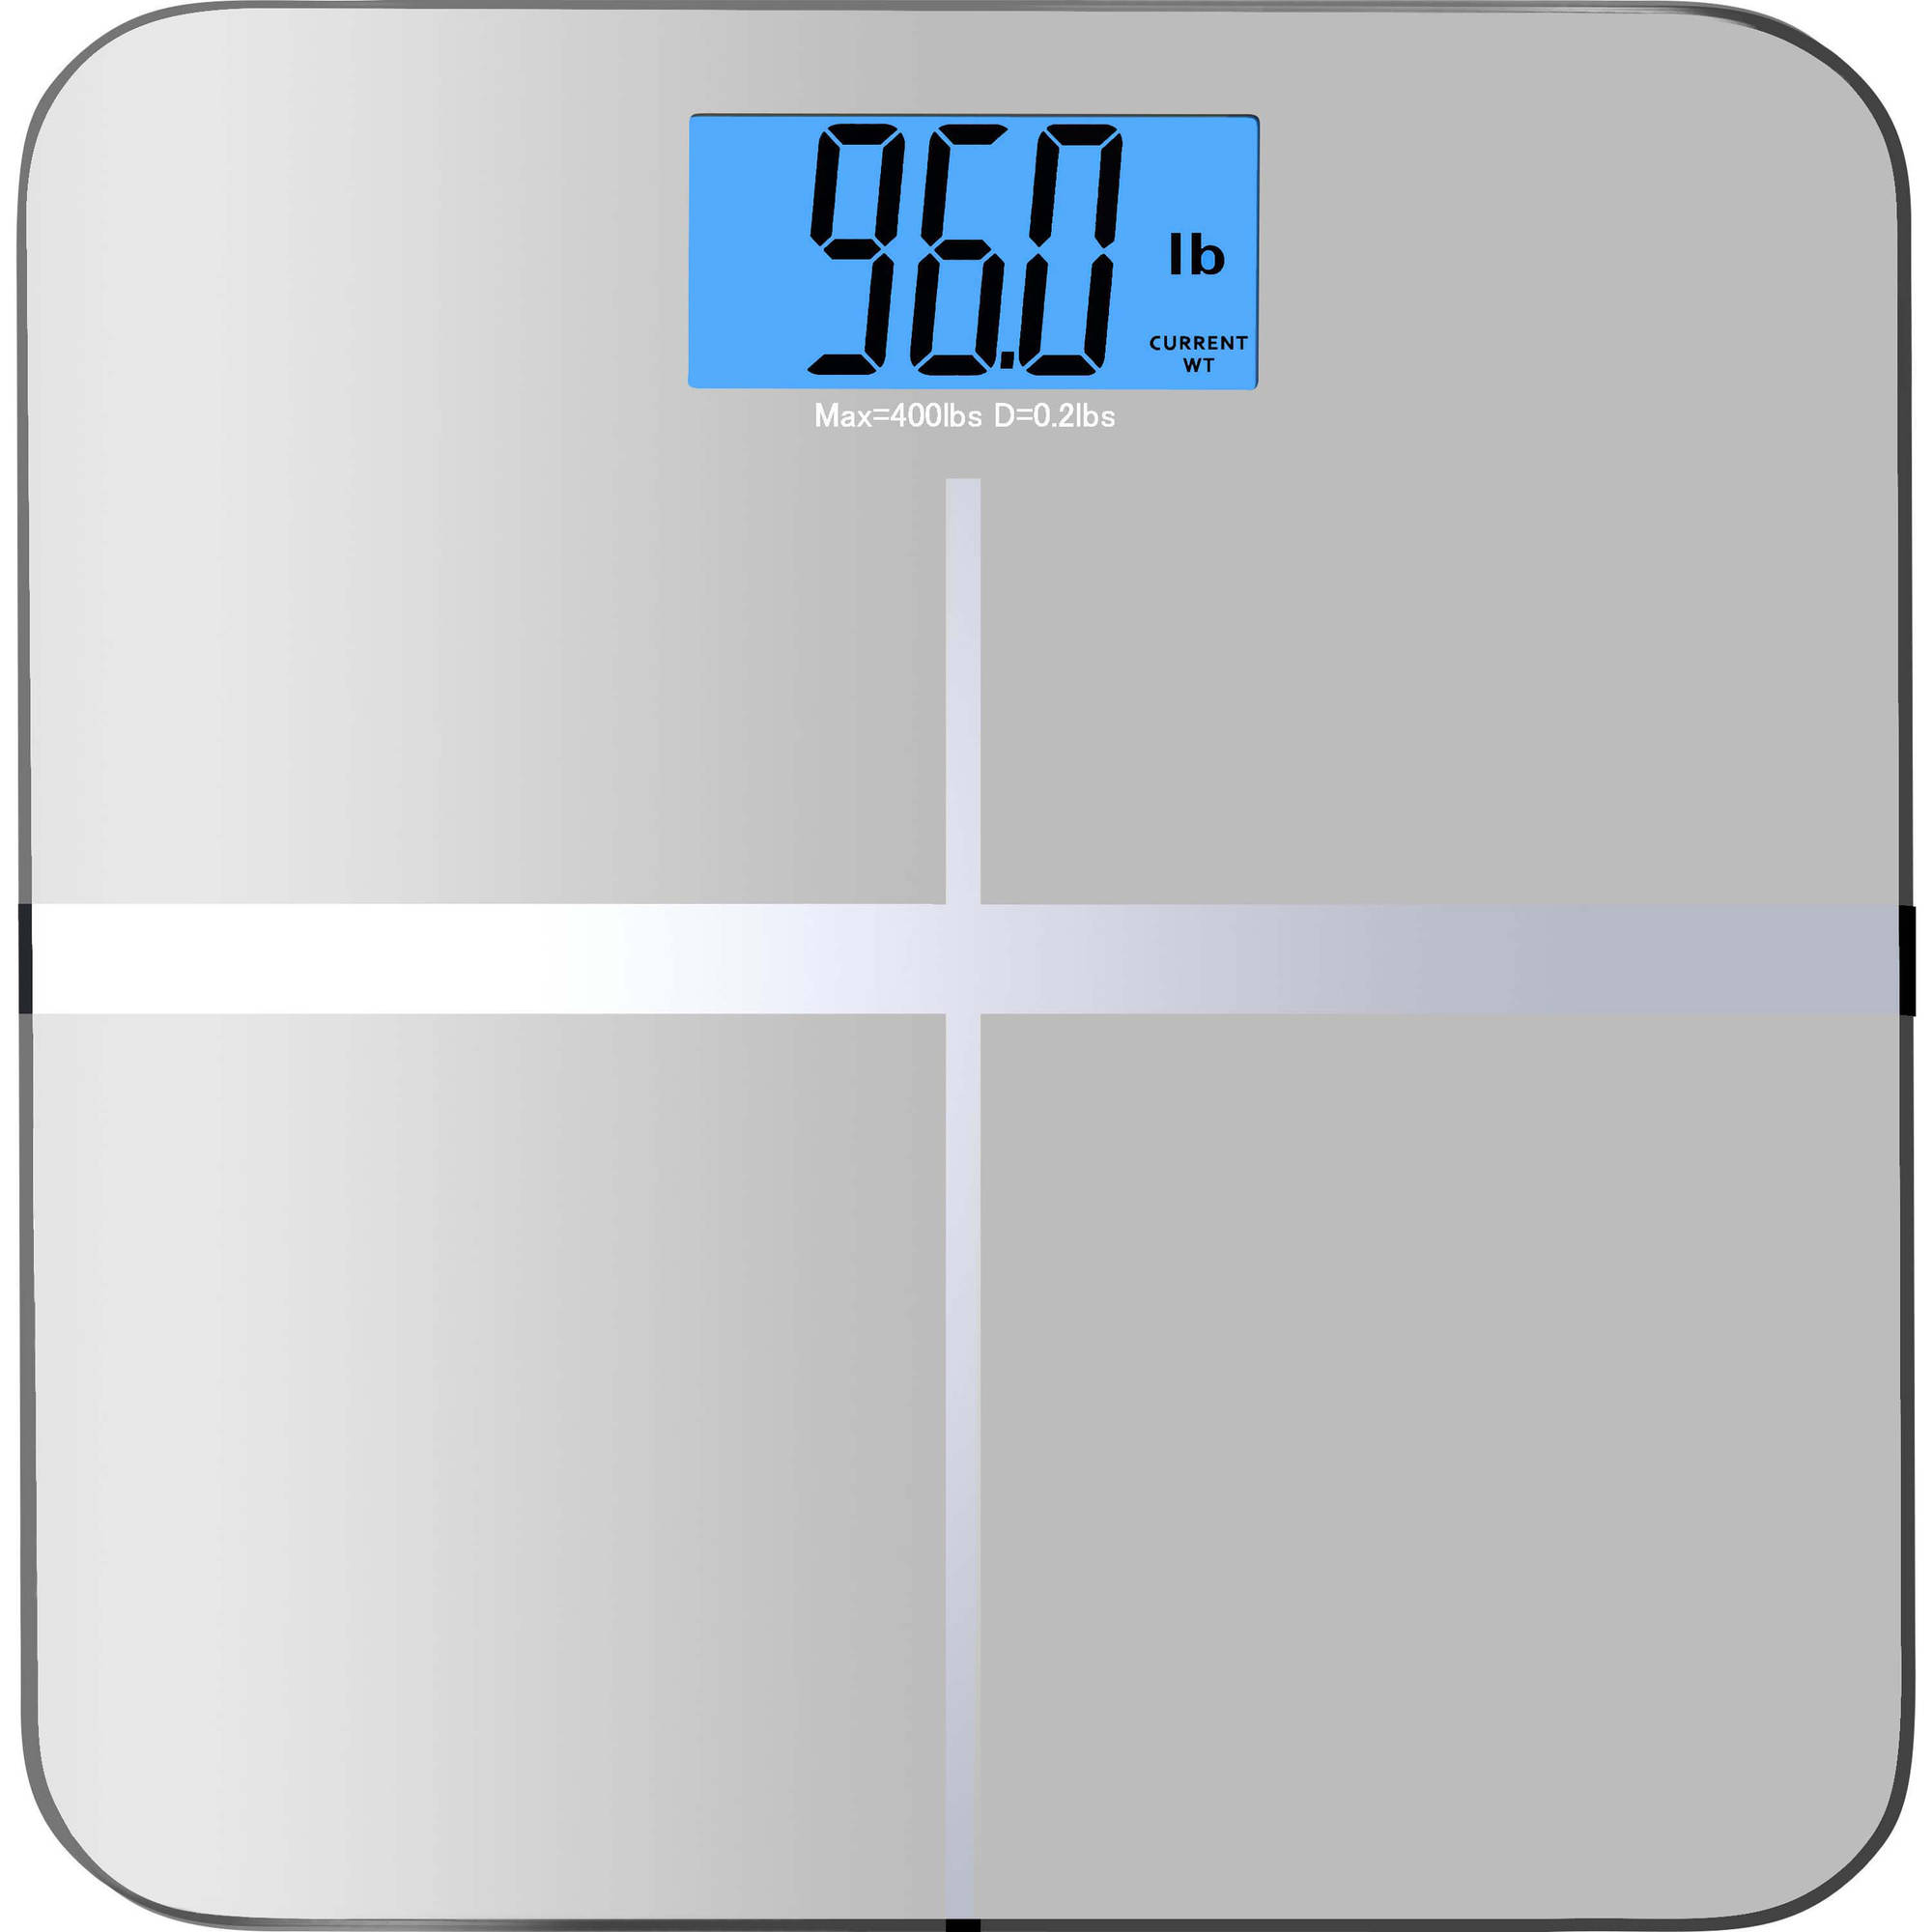 Bathroom scale accuracy consistency - Balancefrom High Accuracy Premium Digital Bathroom Scale With 3 6 Extra Large Dual Color Backlight Display And Smart Step On Technology Newest Version